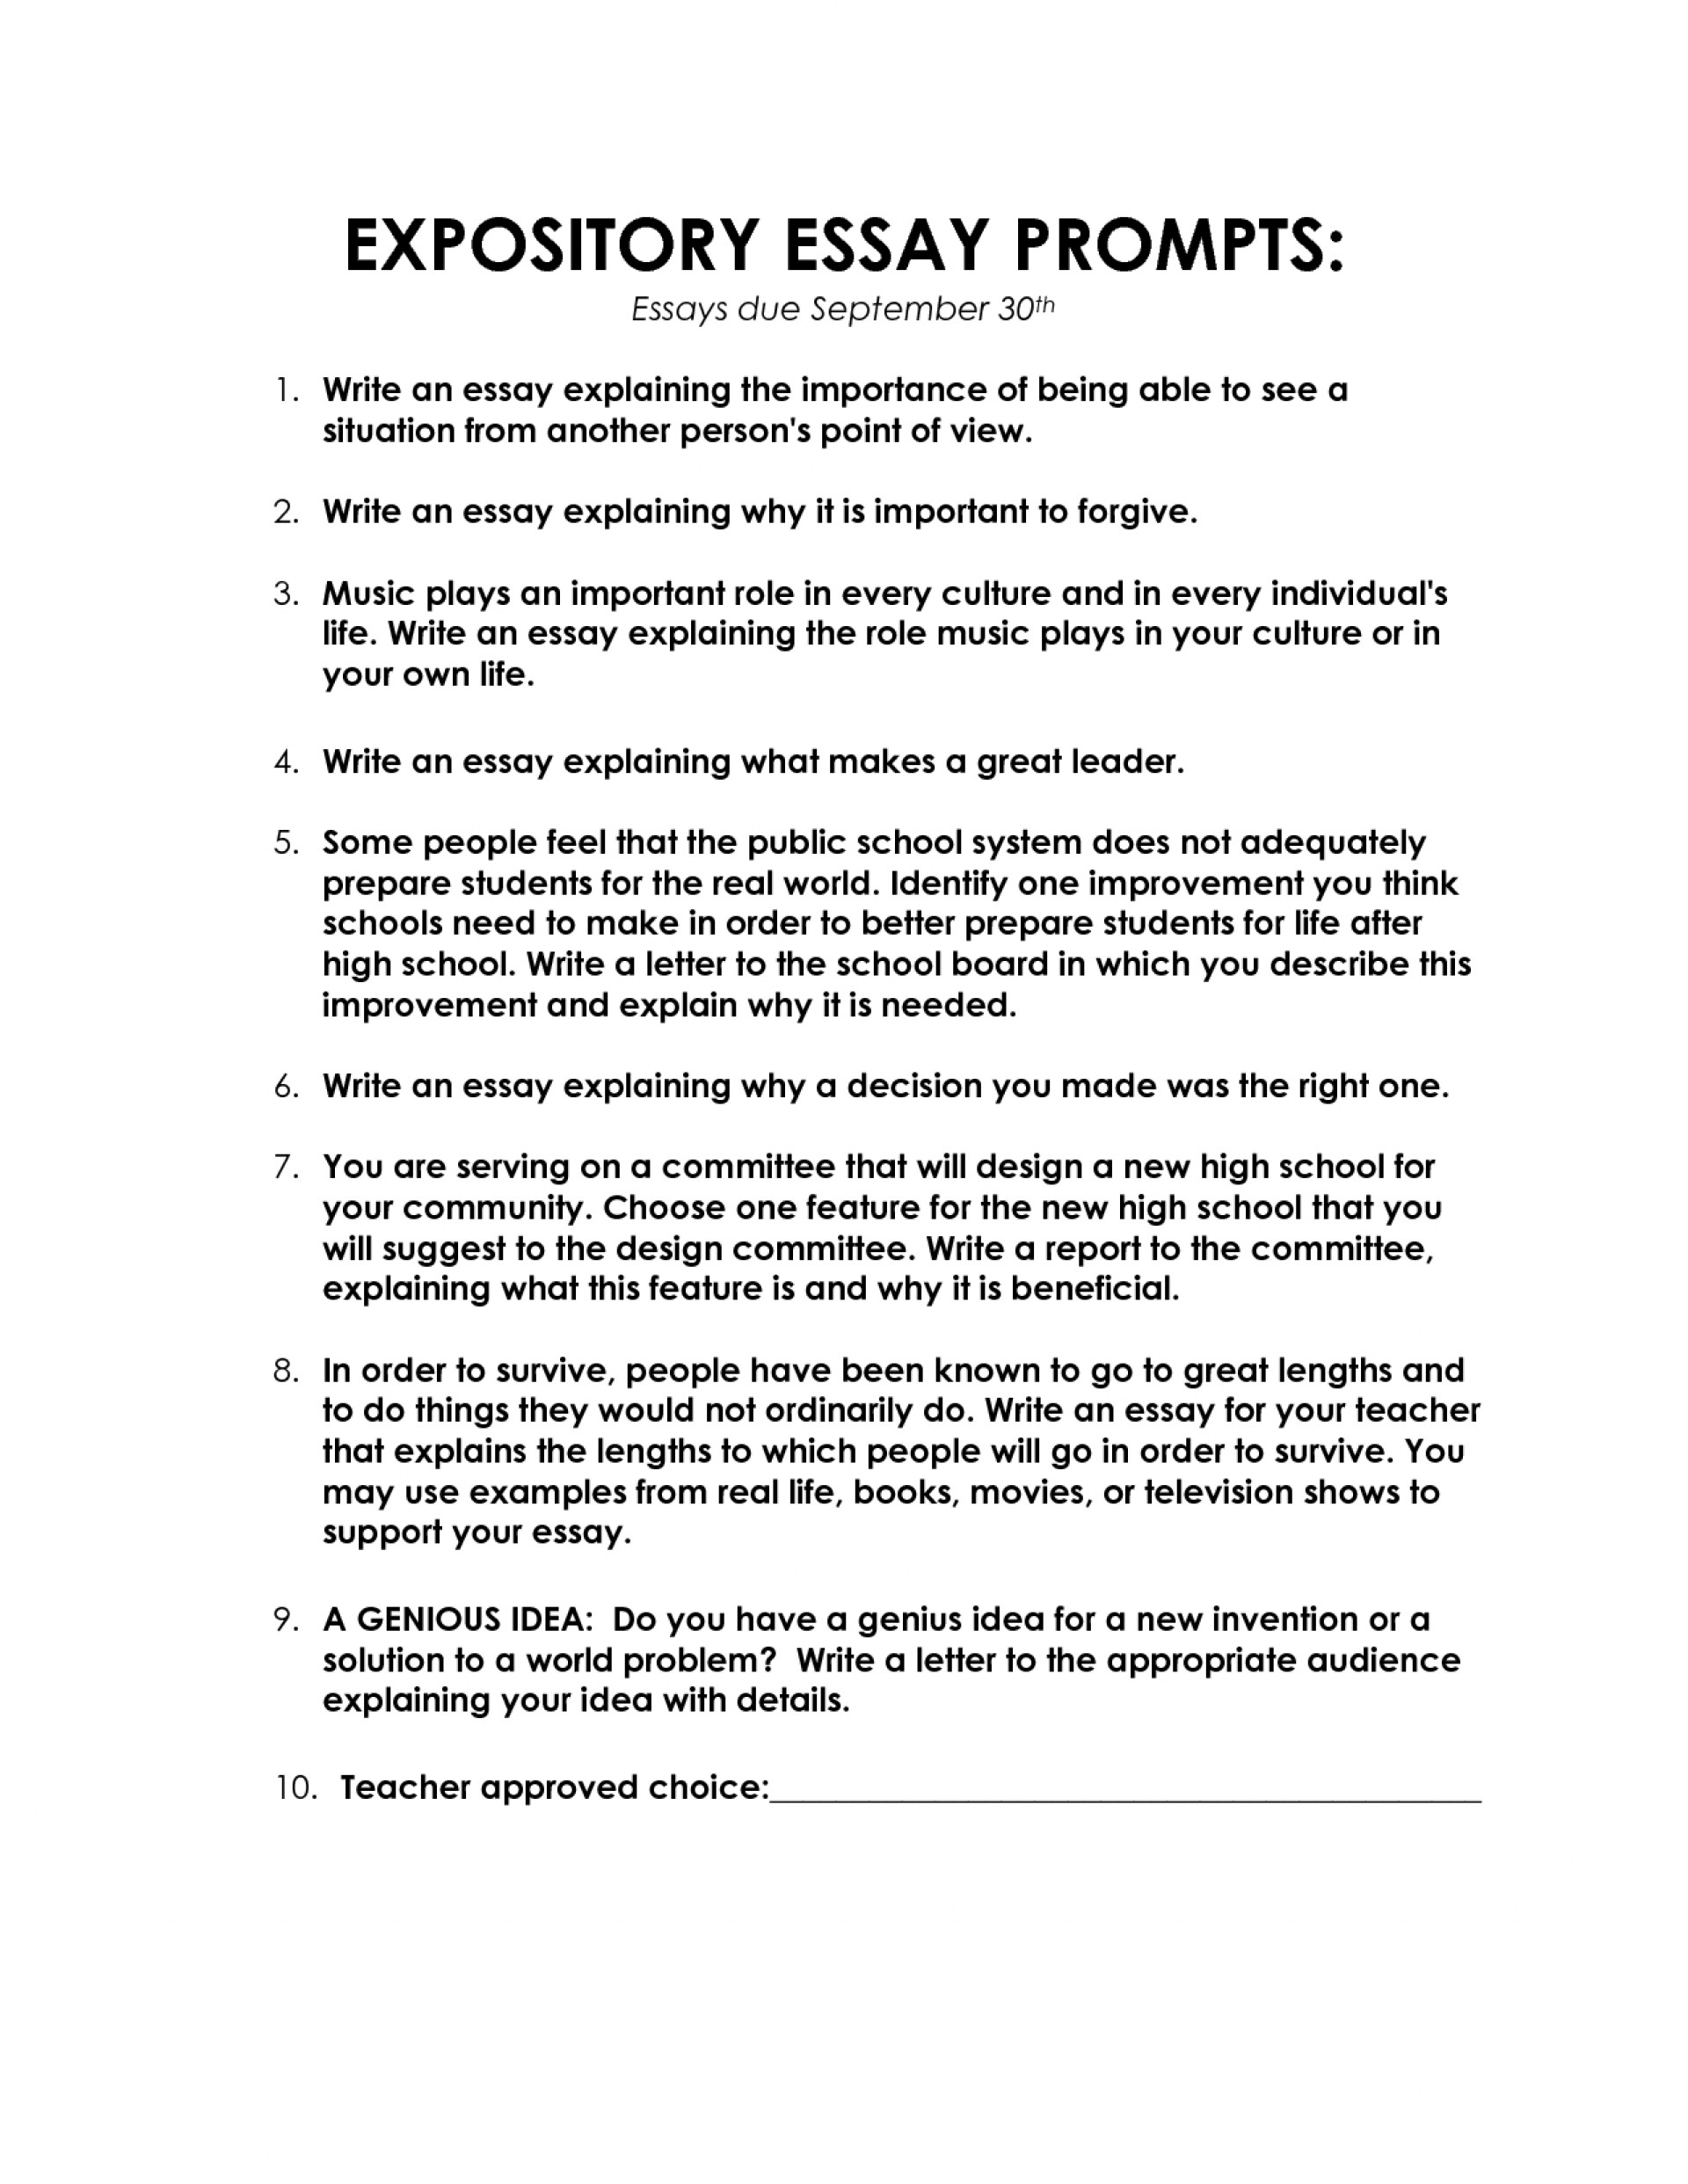 003 Expository Essay Topics Writings And Essays Explanatory For High Rega Things To Help You Write An Awesome 4th Grade Prompt School Prompts 7th 1920